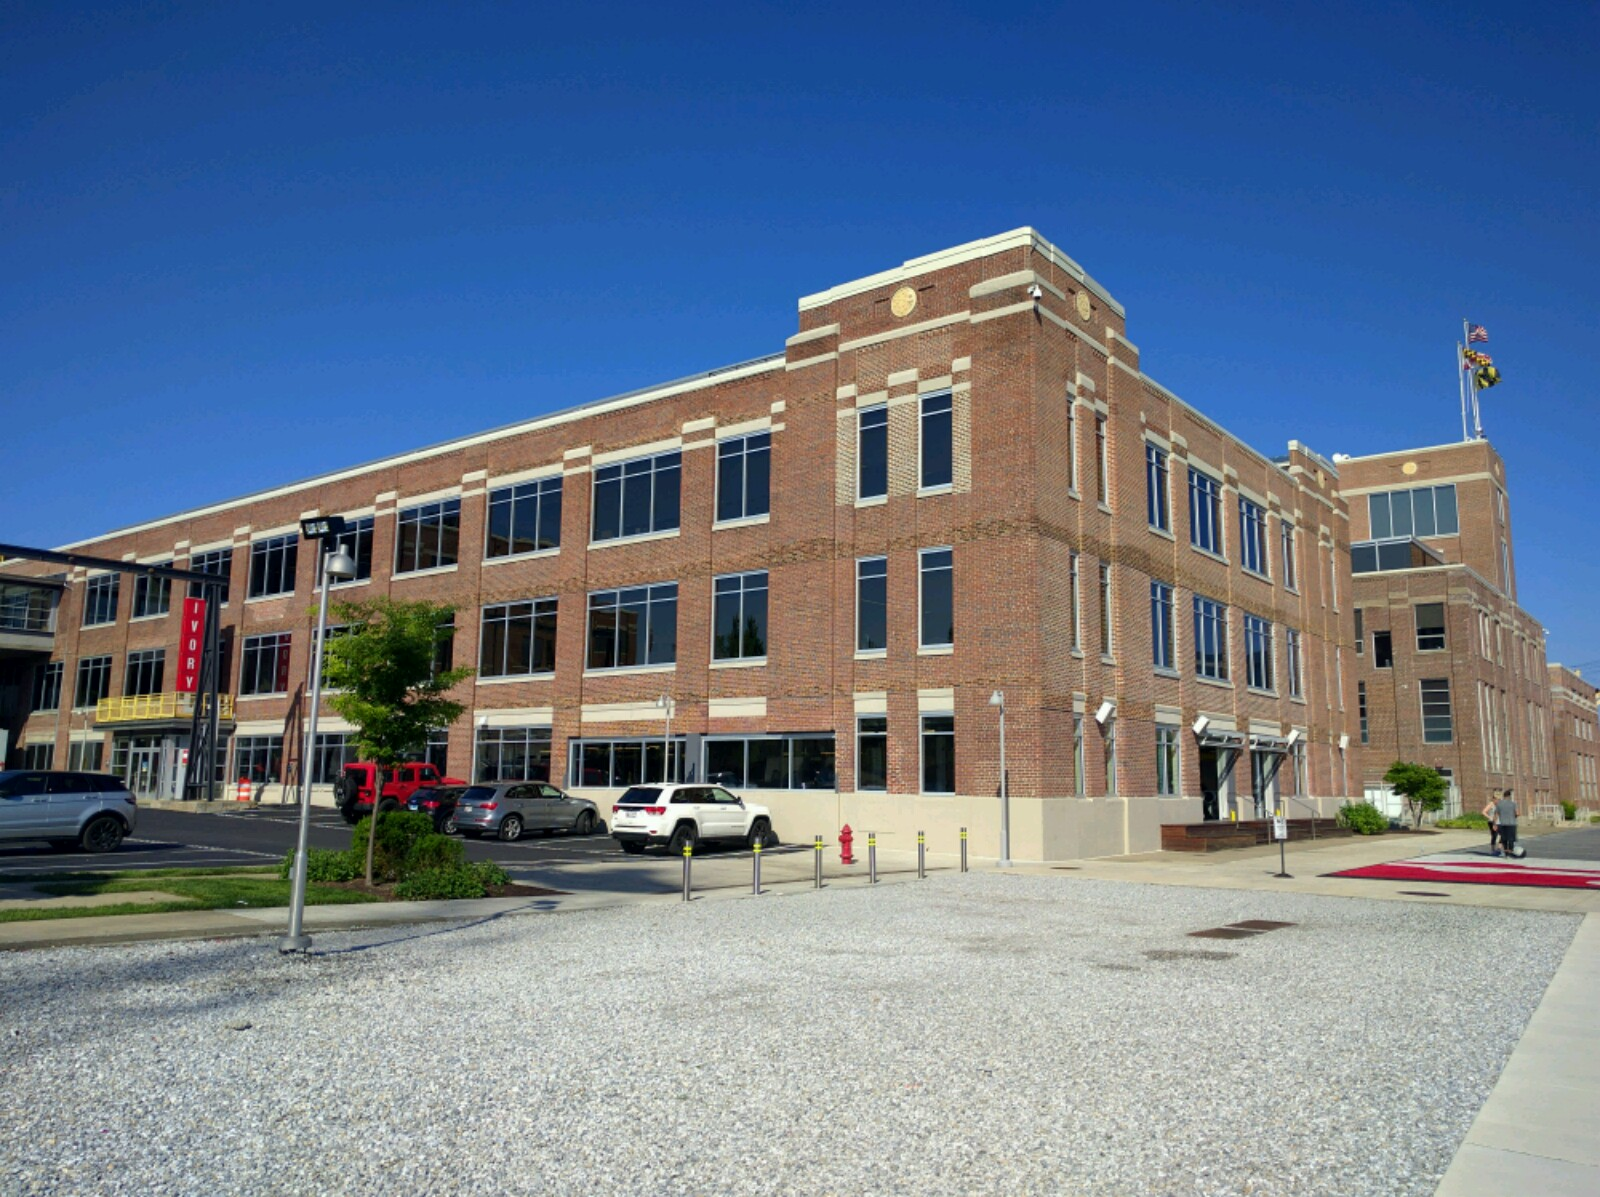 Building on Under Armour's corporate campus in Baltimore, Maryland.